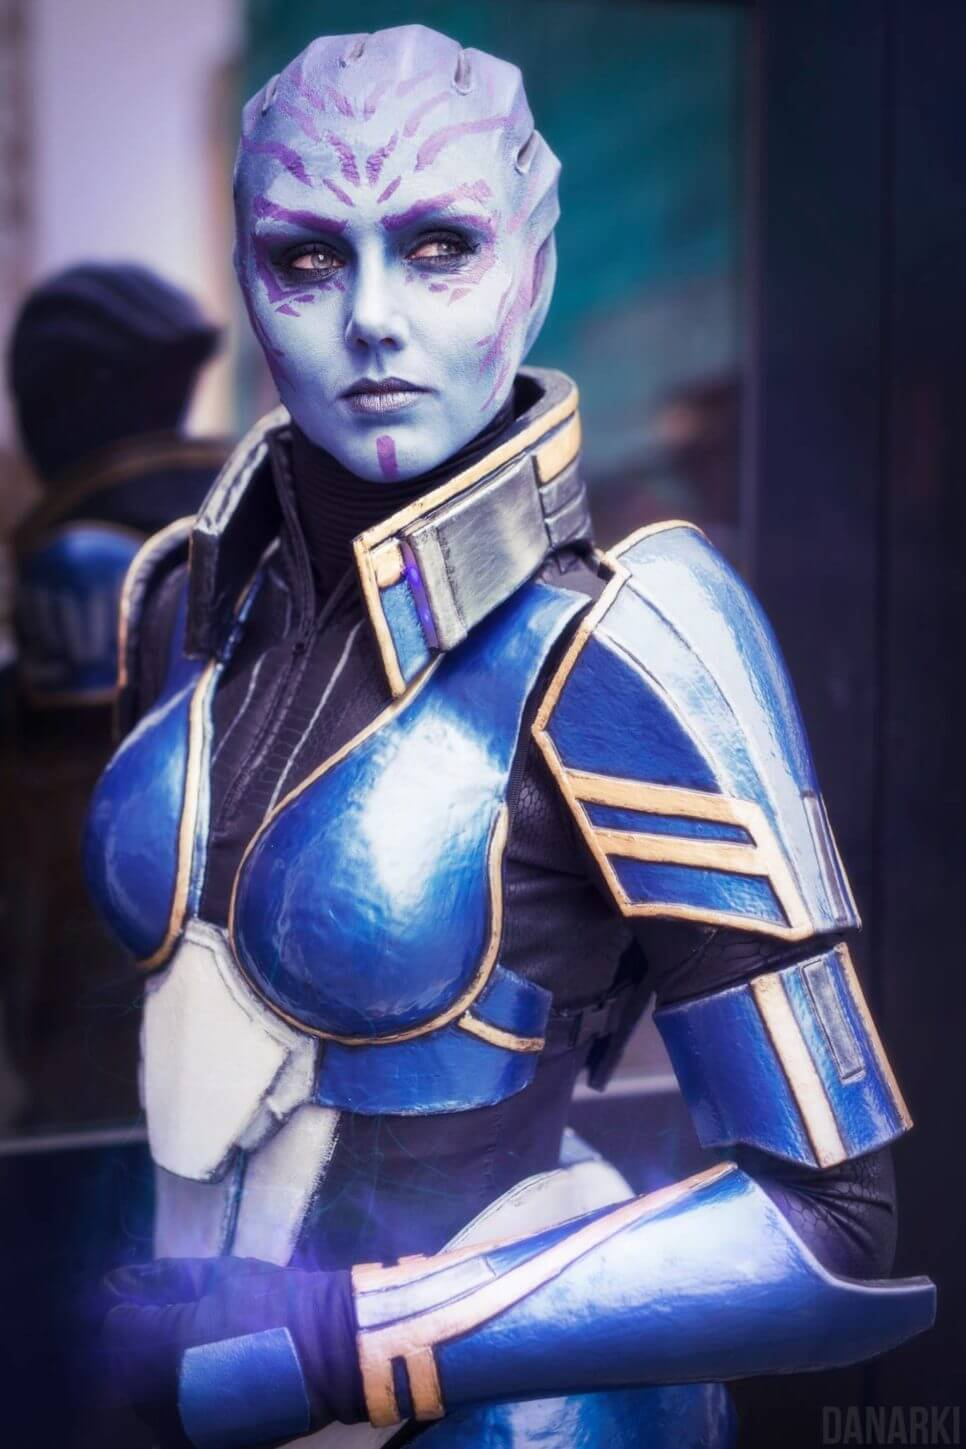 Tela Vasir z Mass Effect 2: Shadow Broker - czas na cosplay!